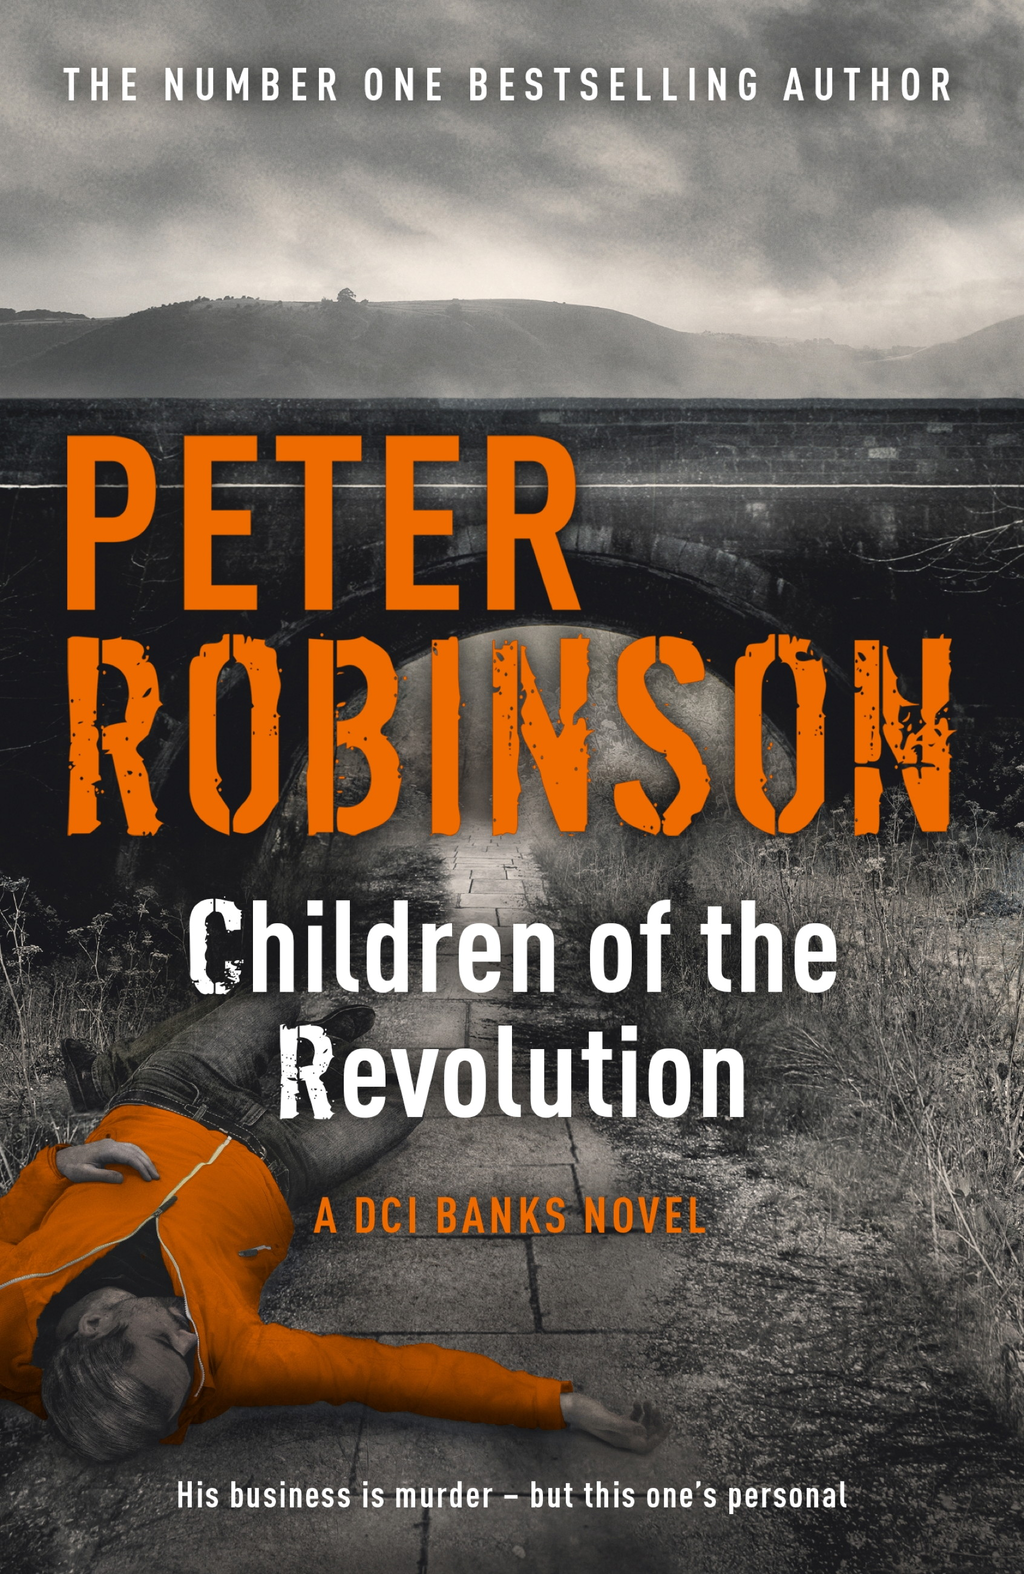 Children of the Revolution The 21st DCI Banks Mystery